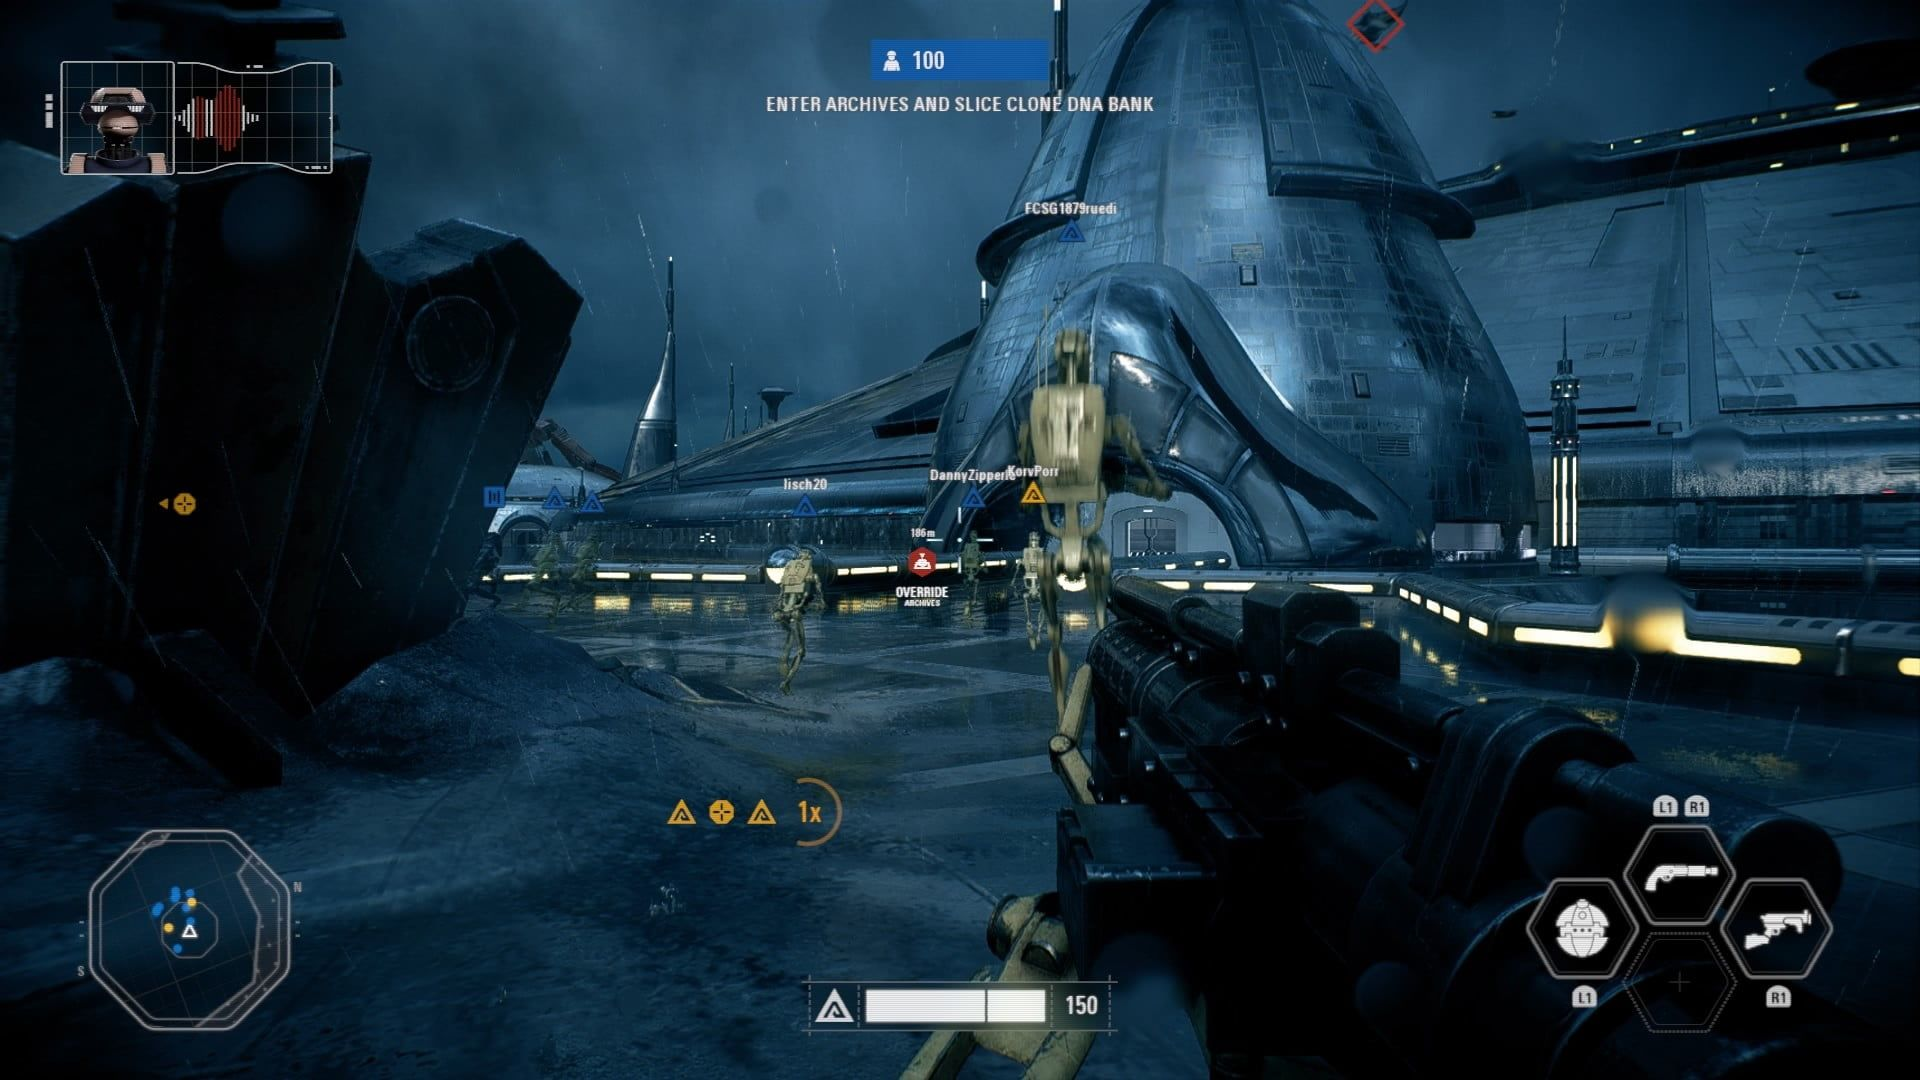 Star Wars Battlefront Ii How To Earn Credits And Get More Star